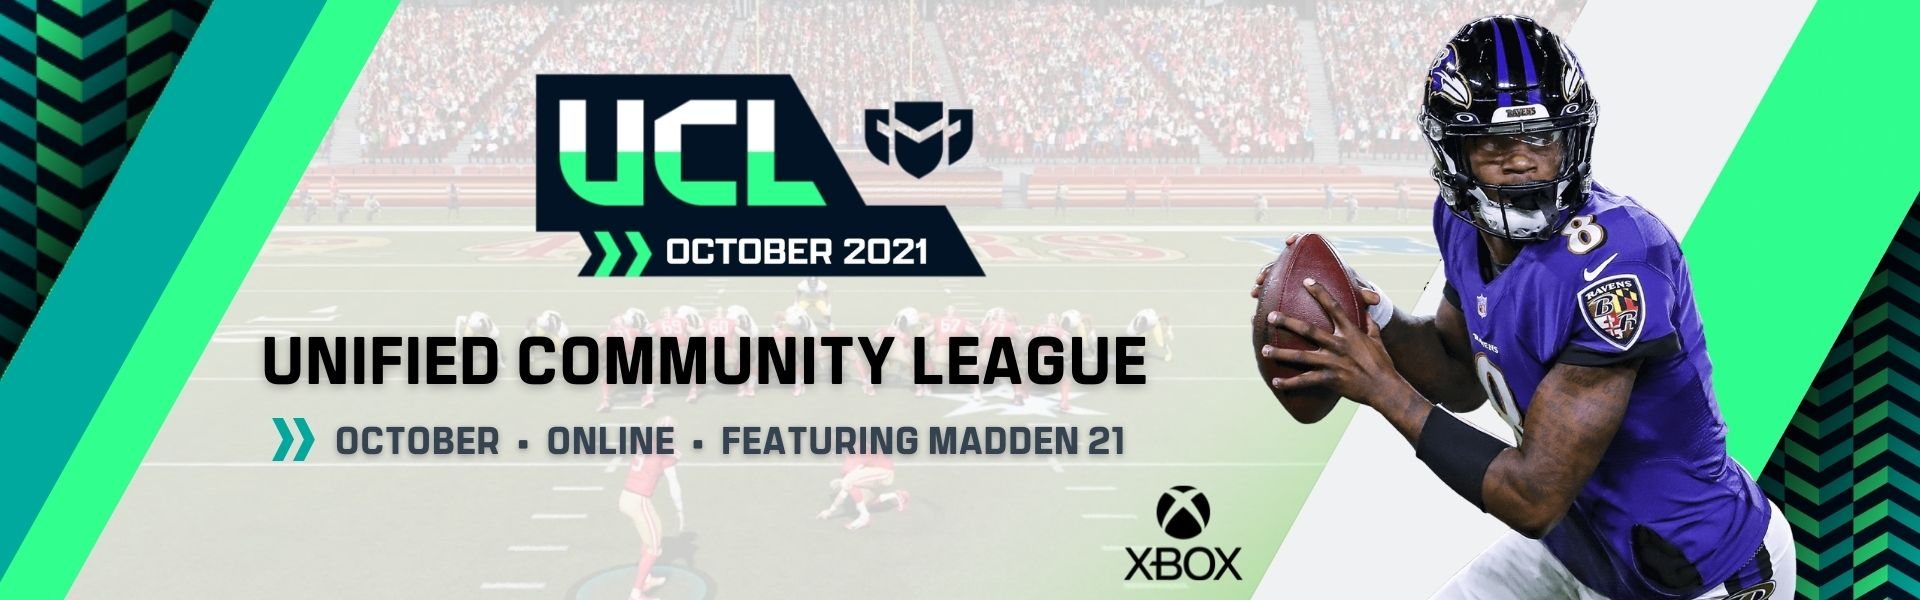 October UCL: Featuring Madden 21 – XBOX